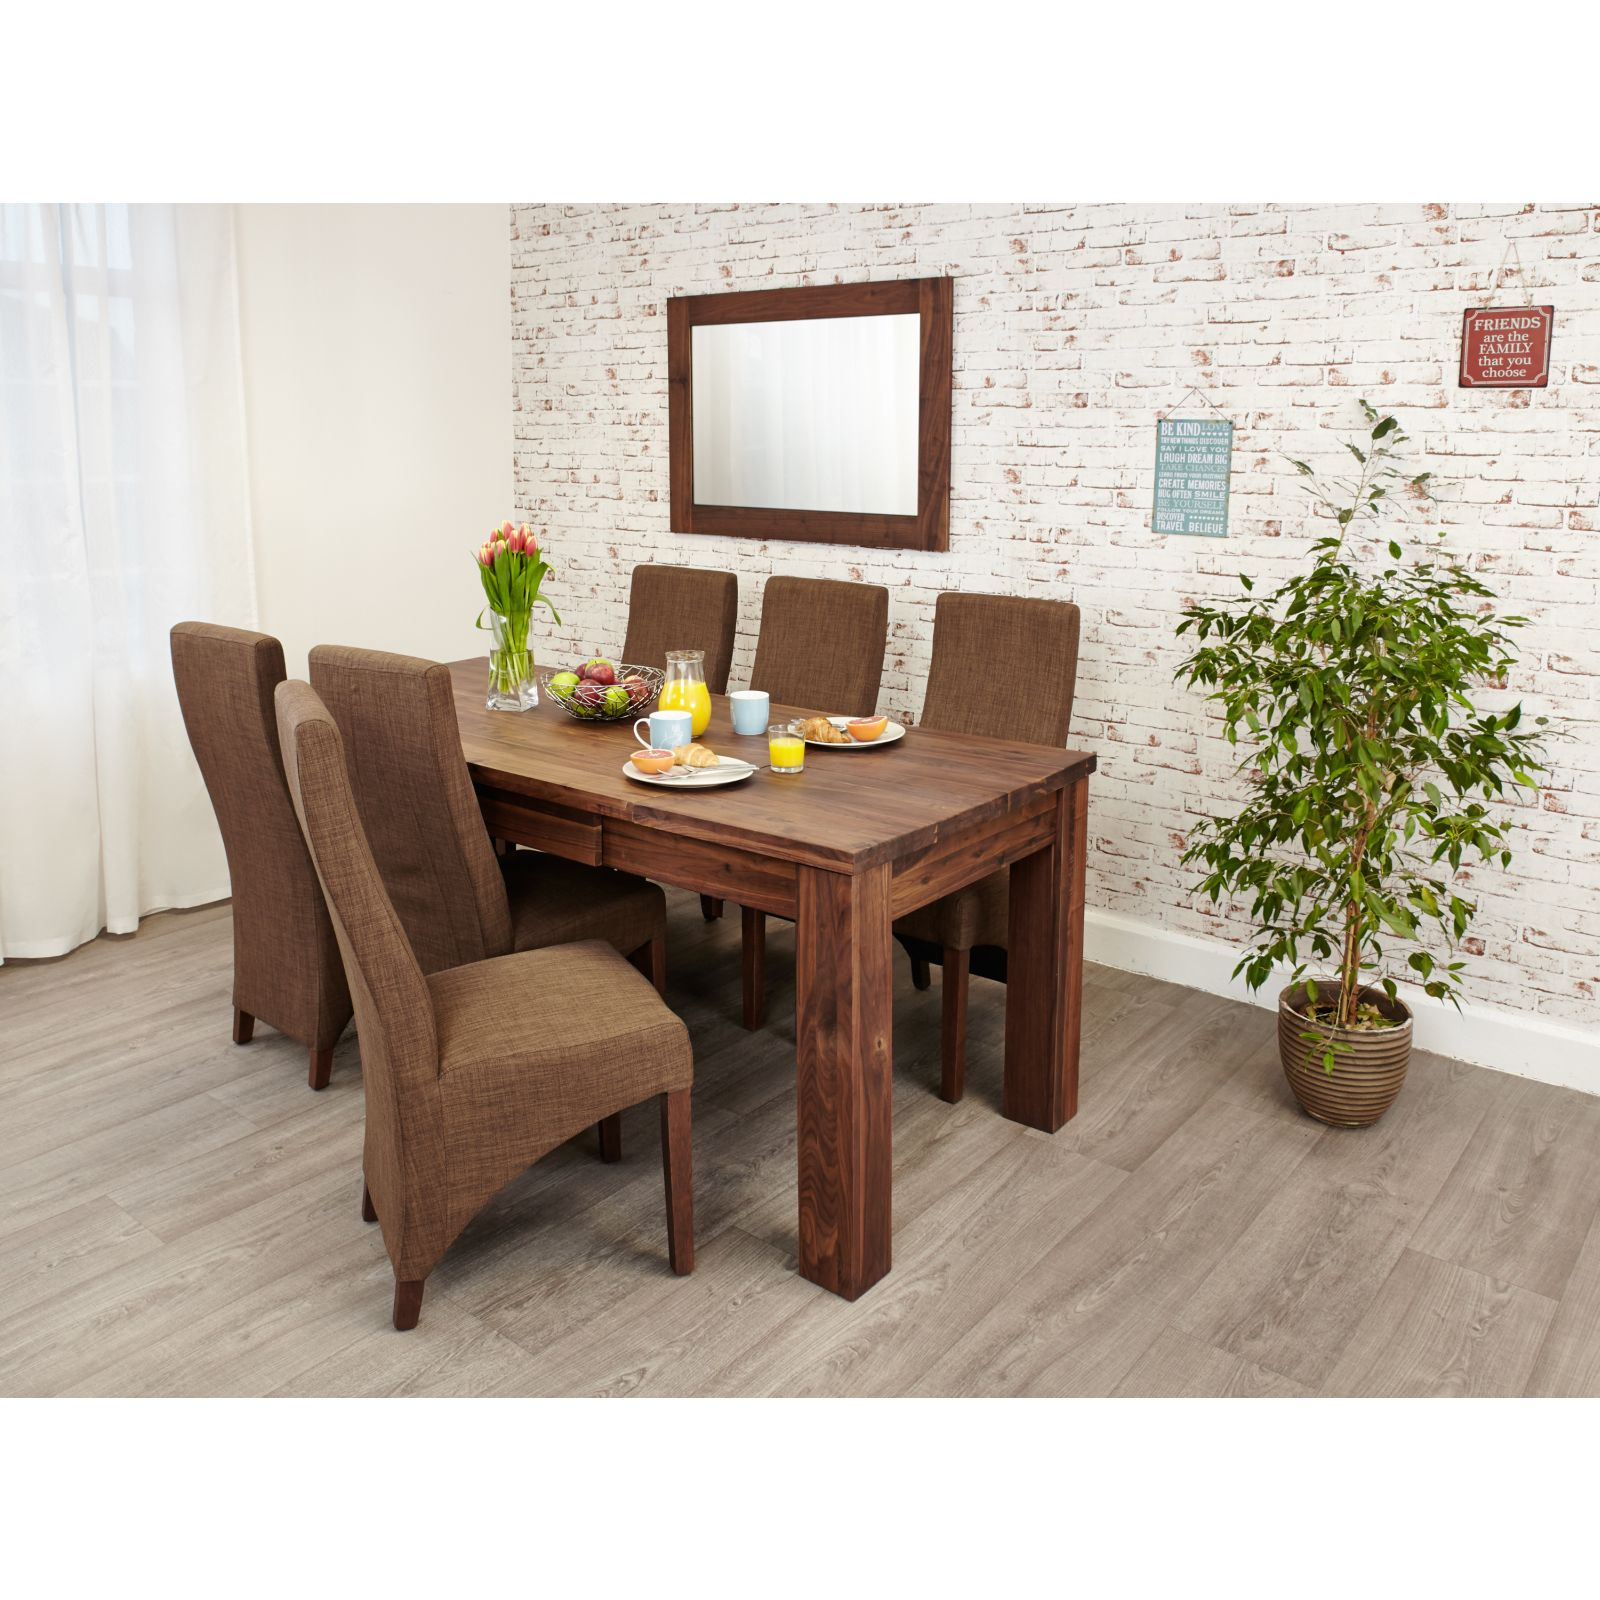 Linea solid walnut furniture large dining room extending for Large dining room pictures